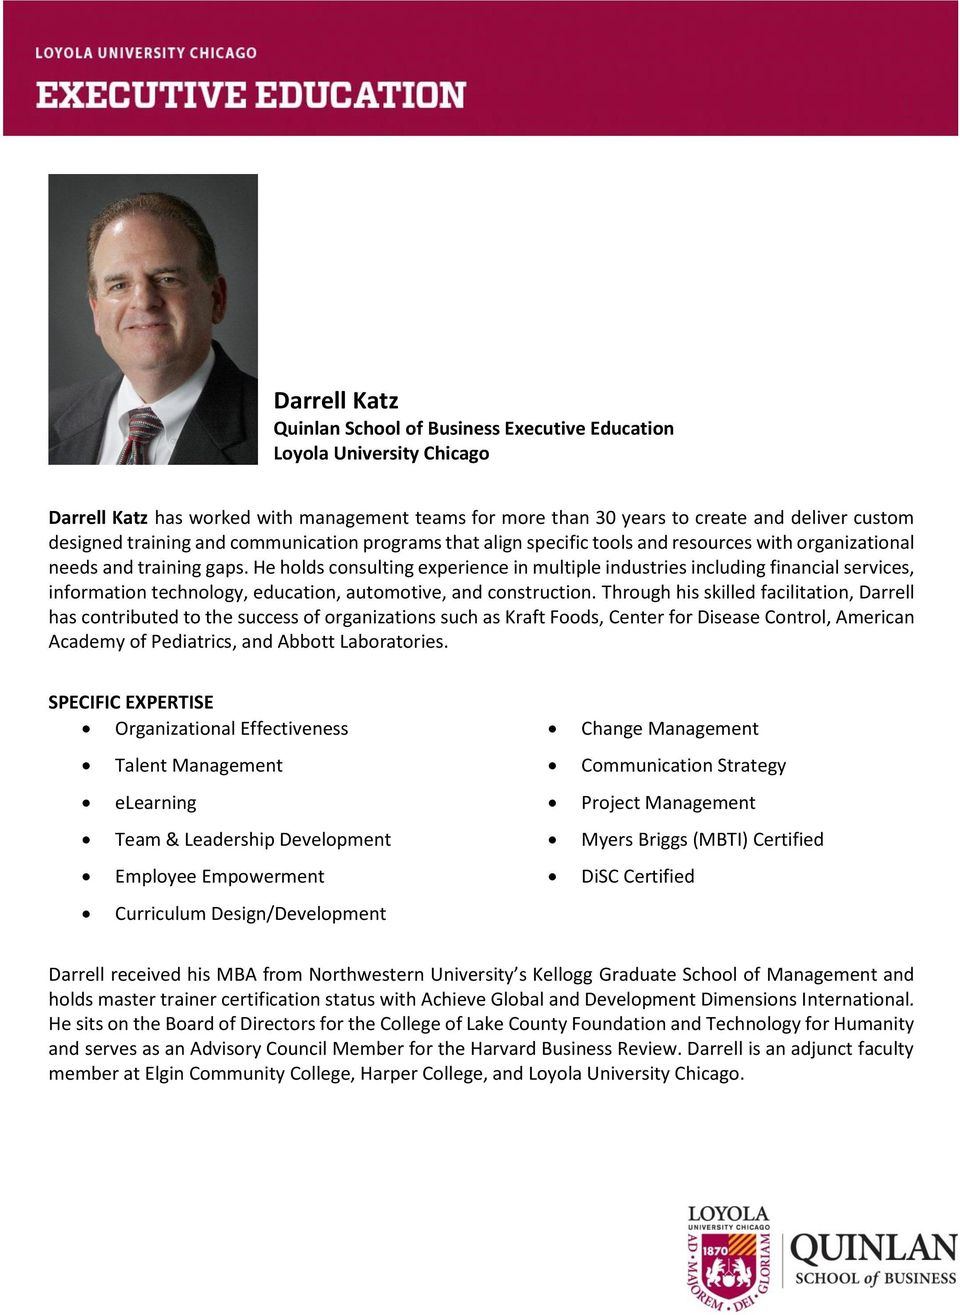 He holds consulting experience in multiple industries including financial services, information technology, education, automotive, and construction.